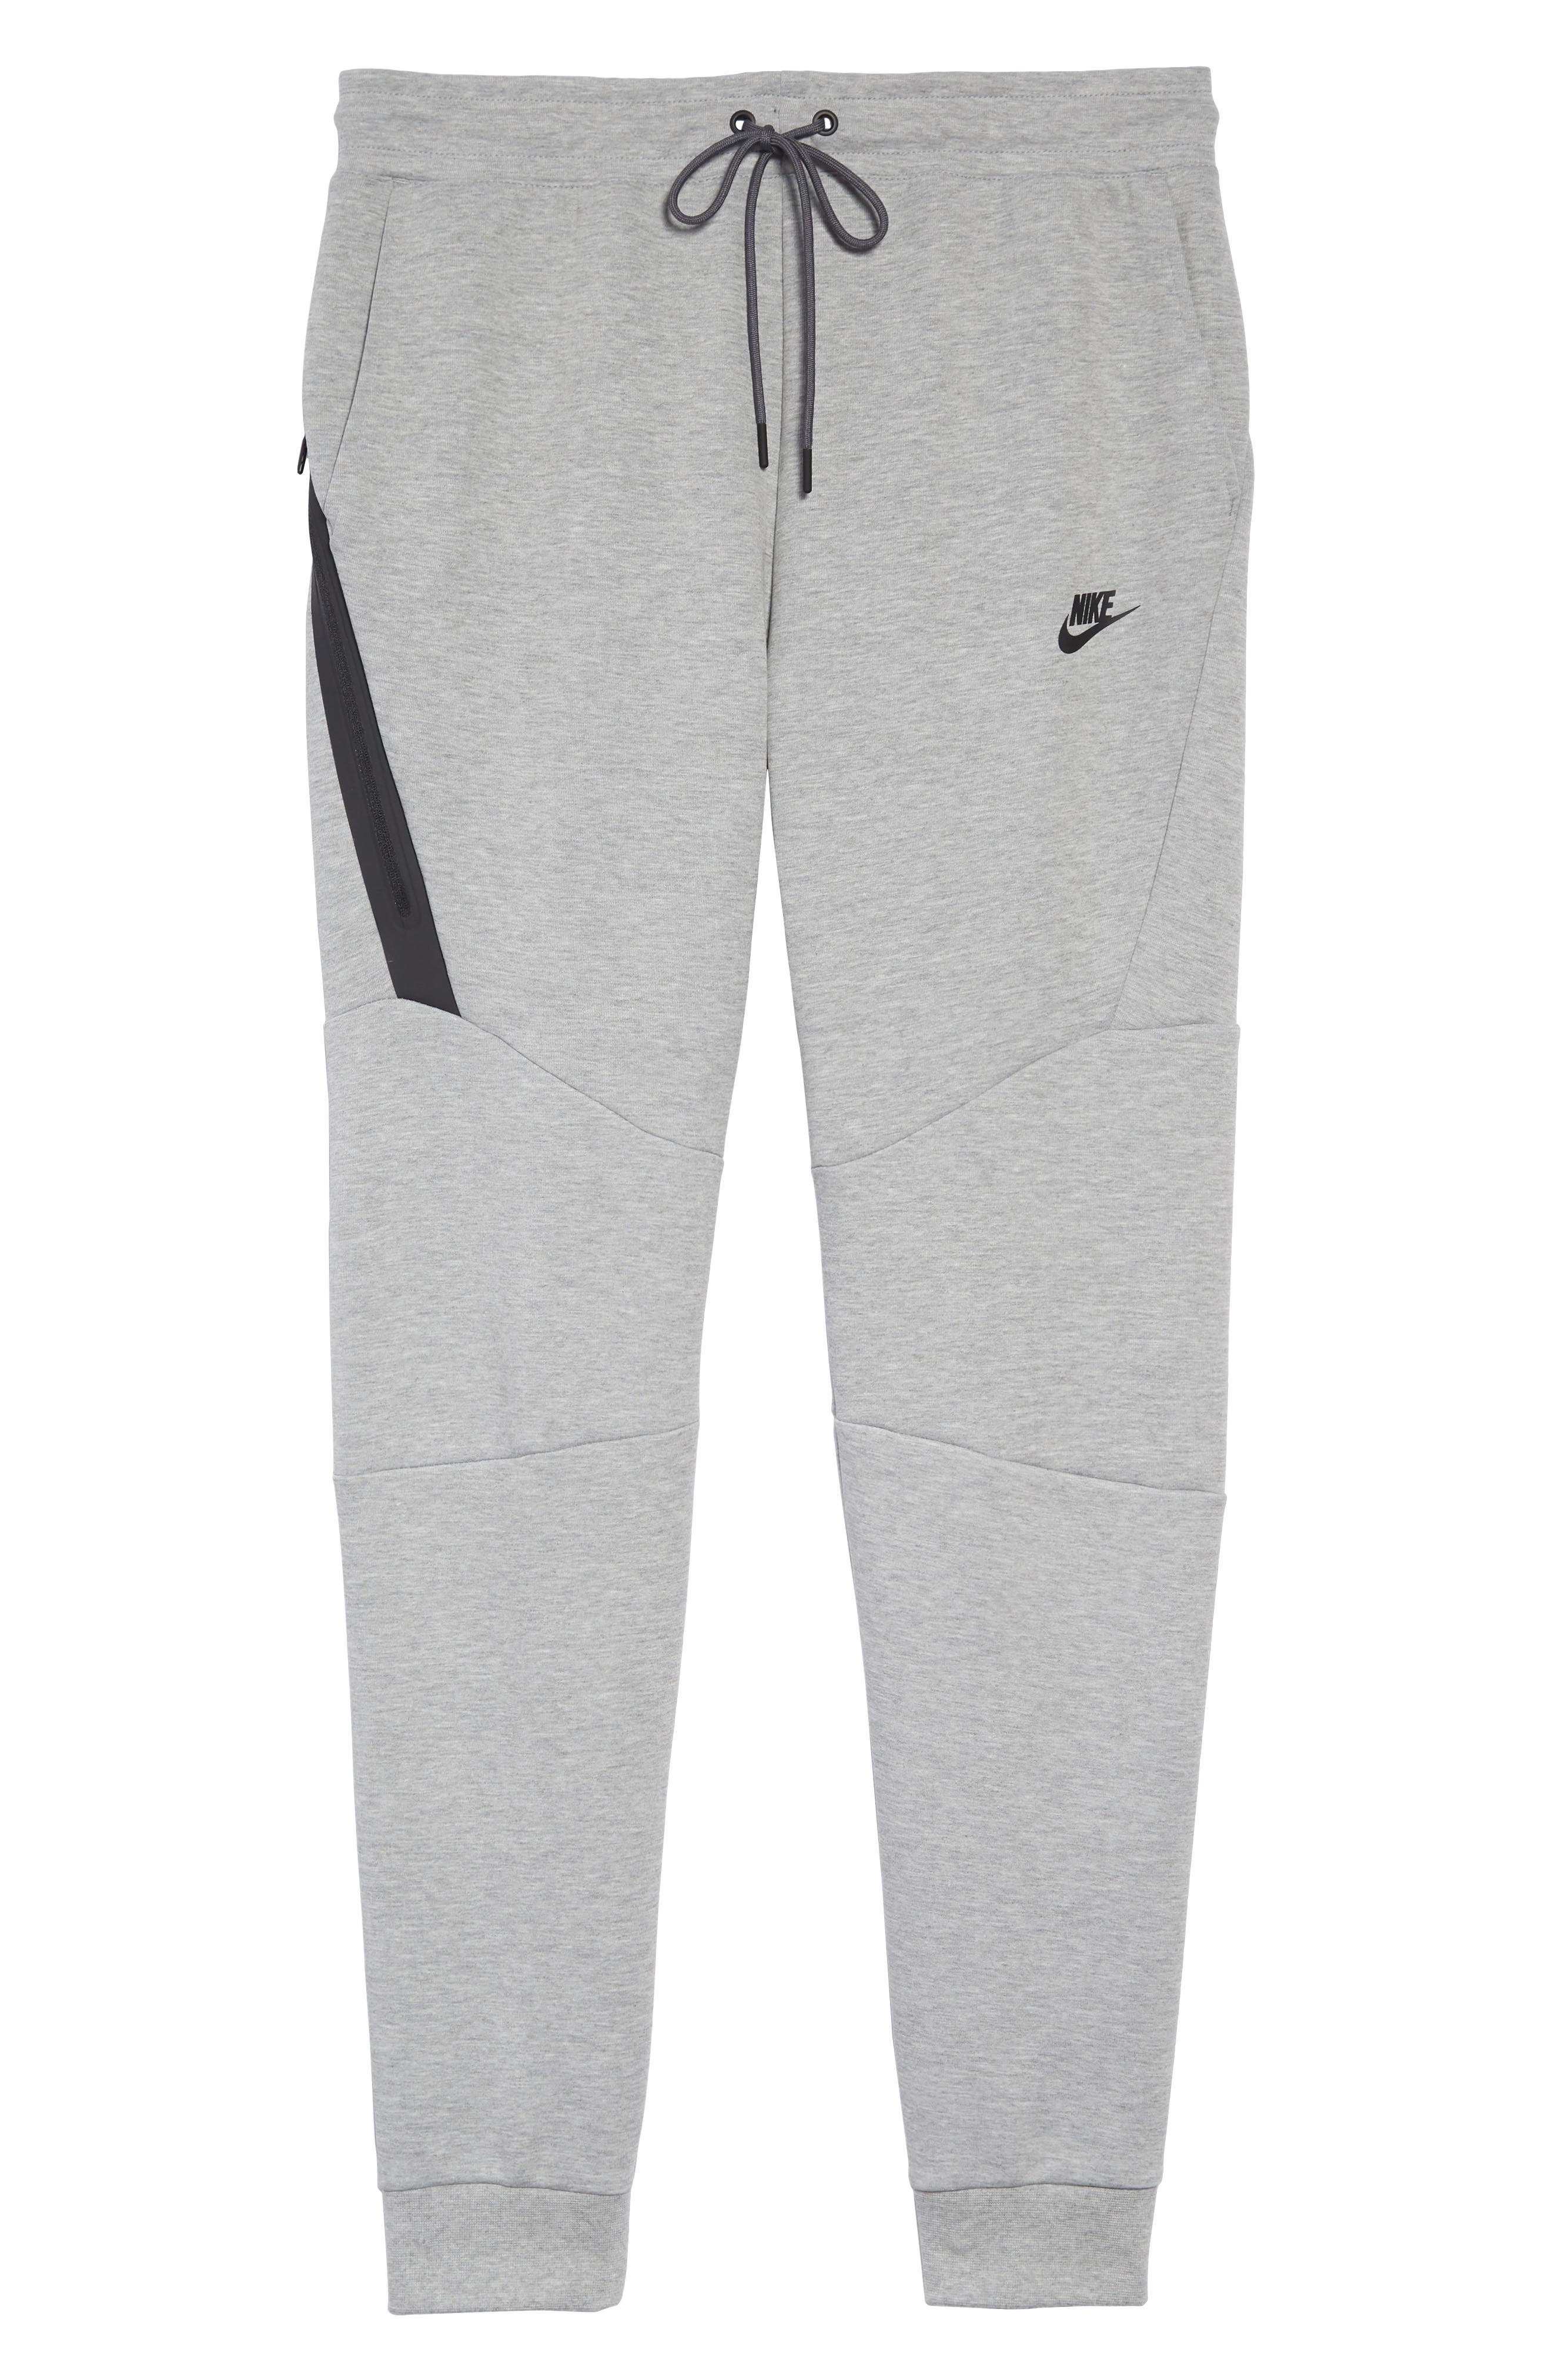 NIKE, Tech Fleece Jogger Pants, Alternate thumbnail 7, color, DARK GREY HEATHER/ BLACK